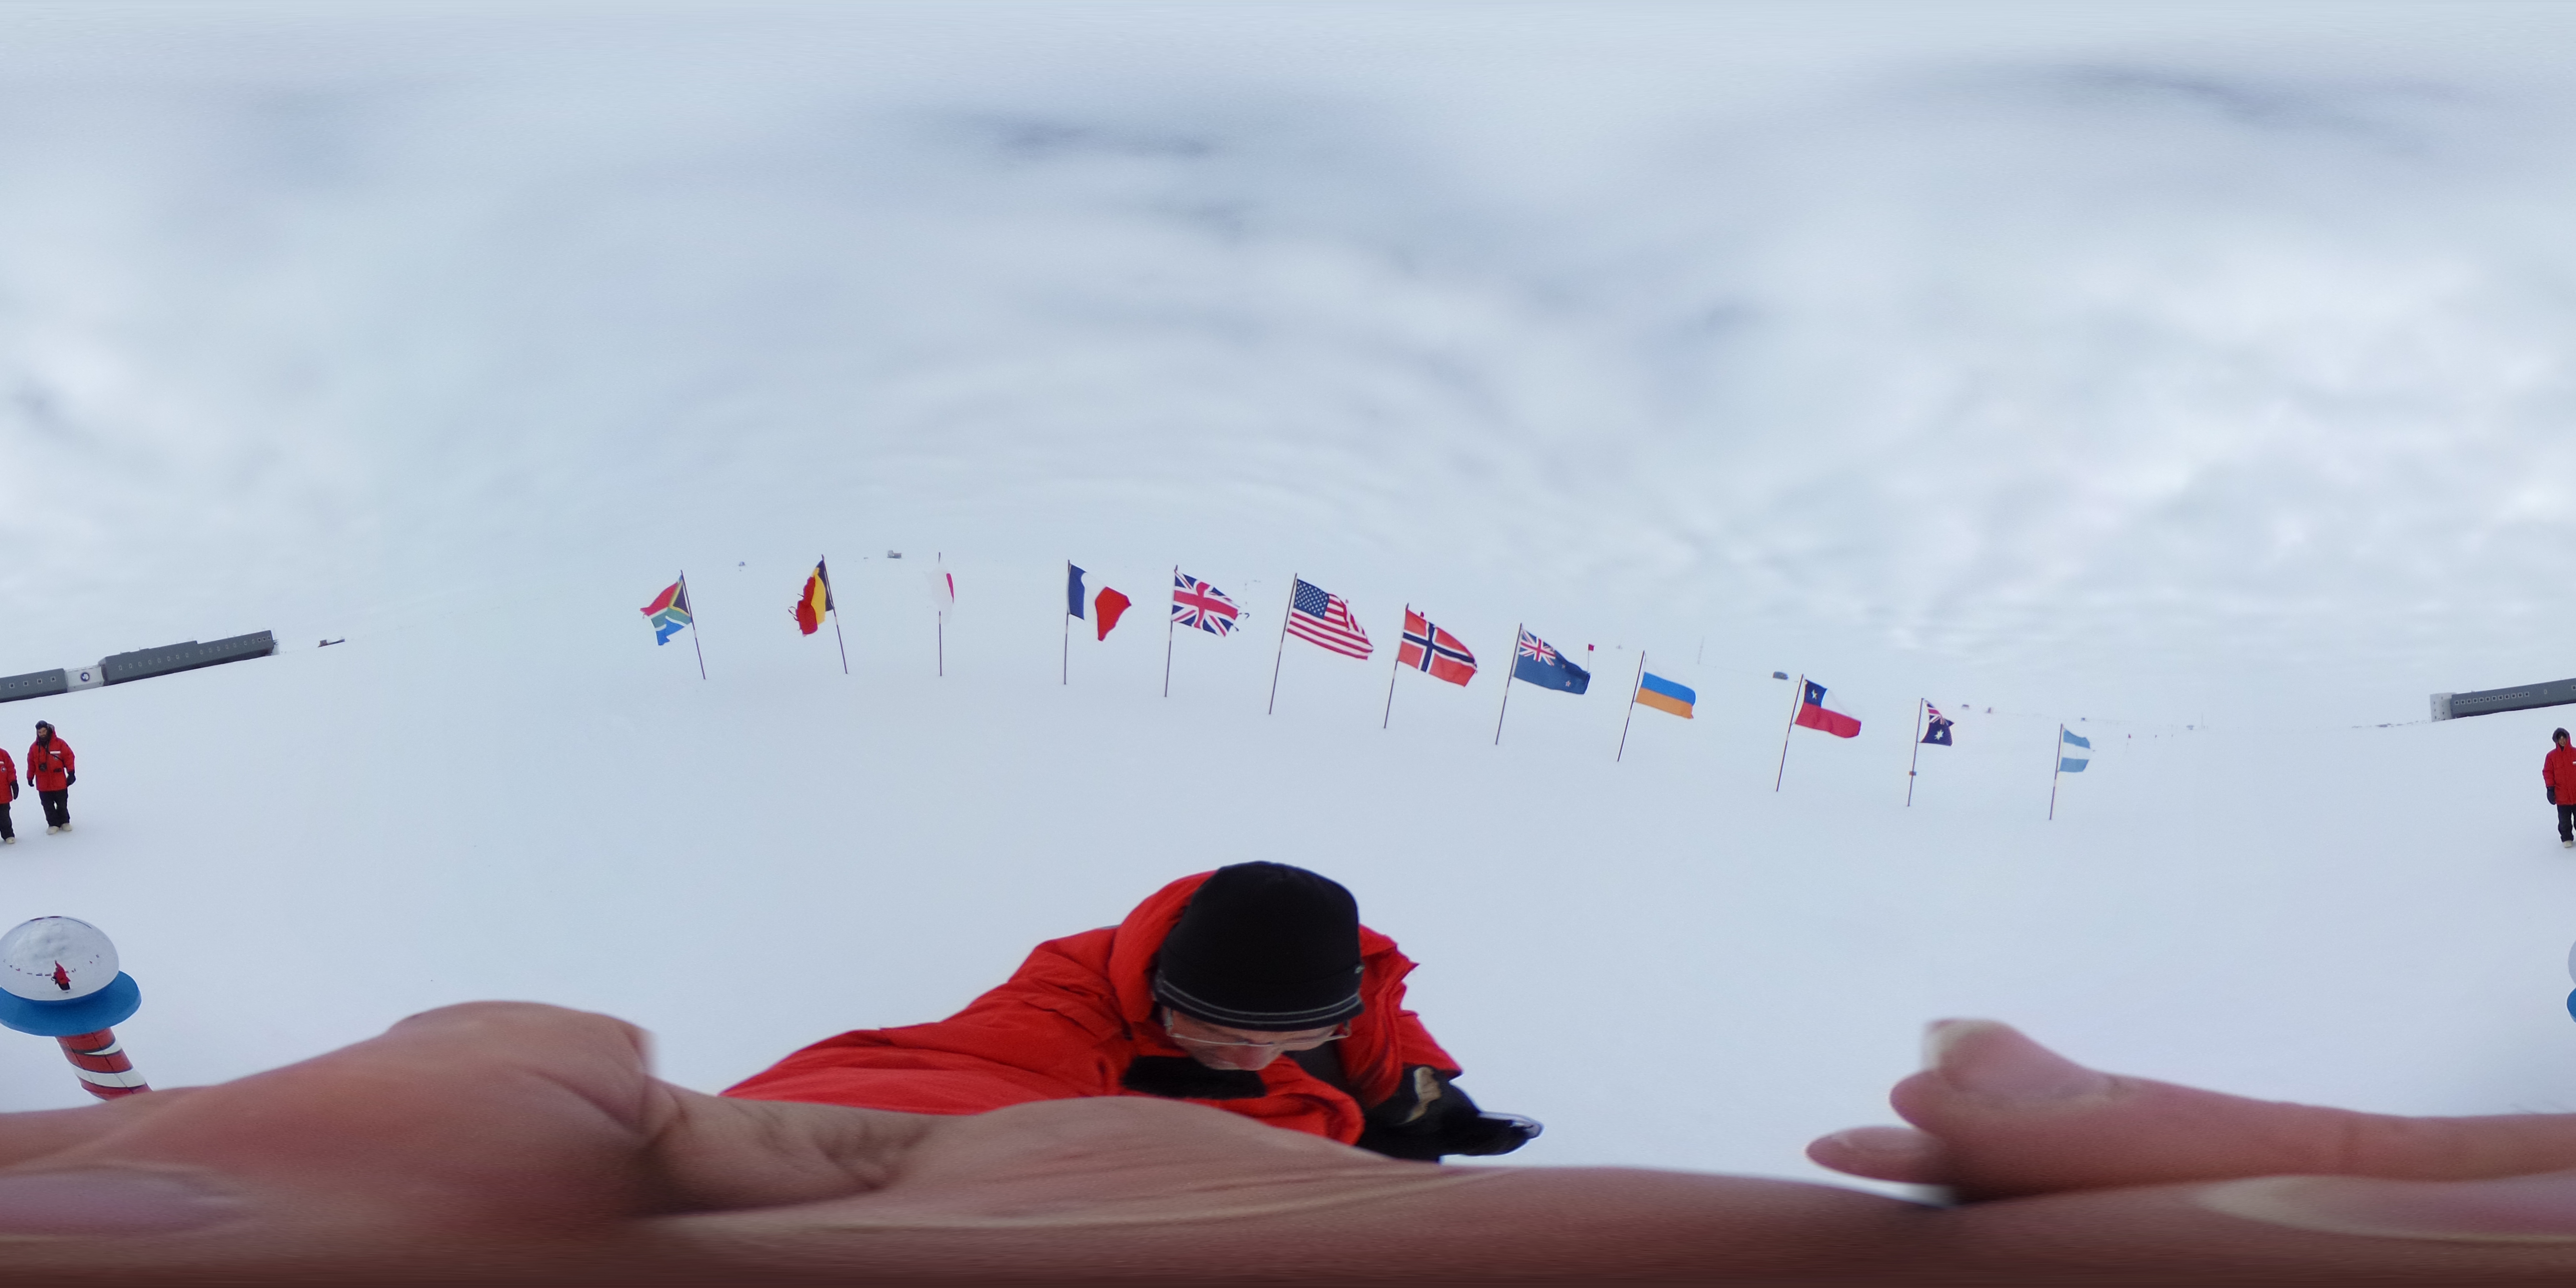 Ceremonial South Pole in 360 degrees